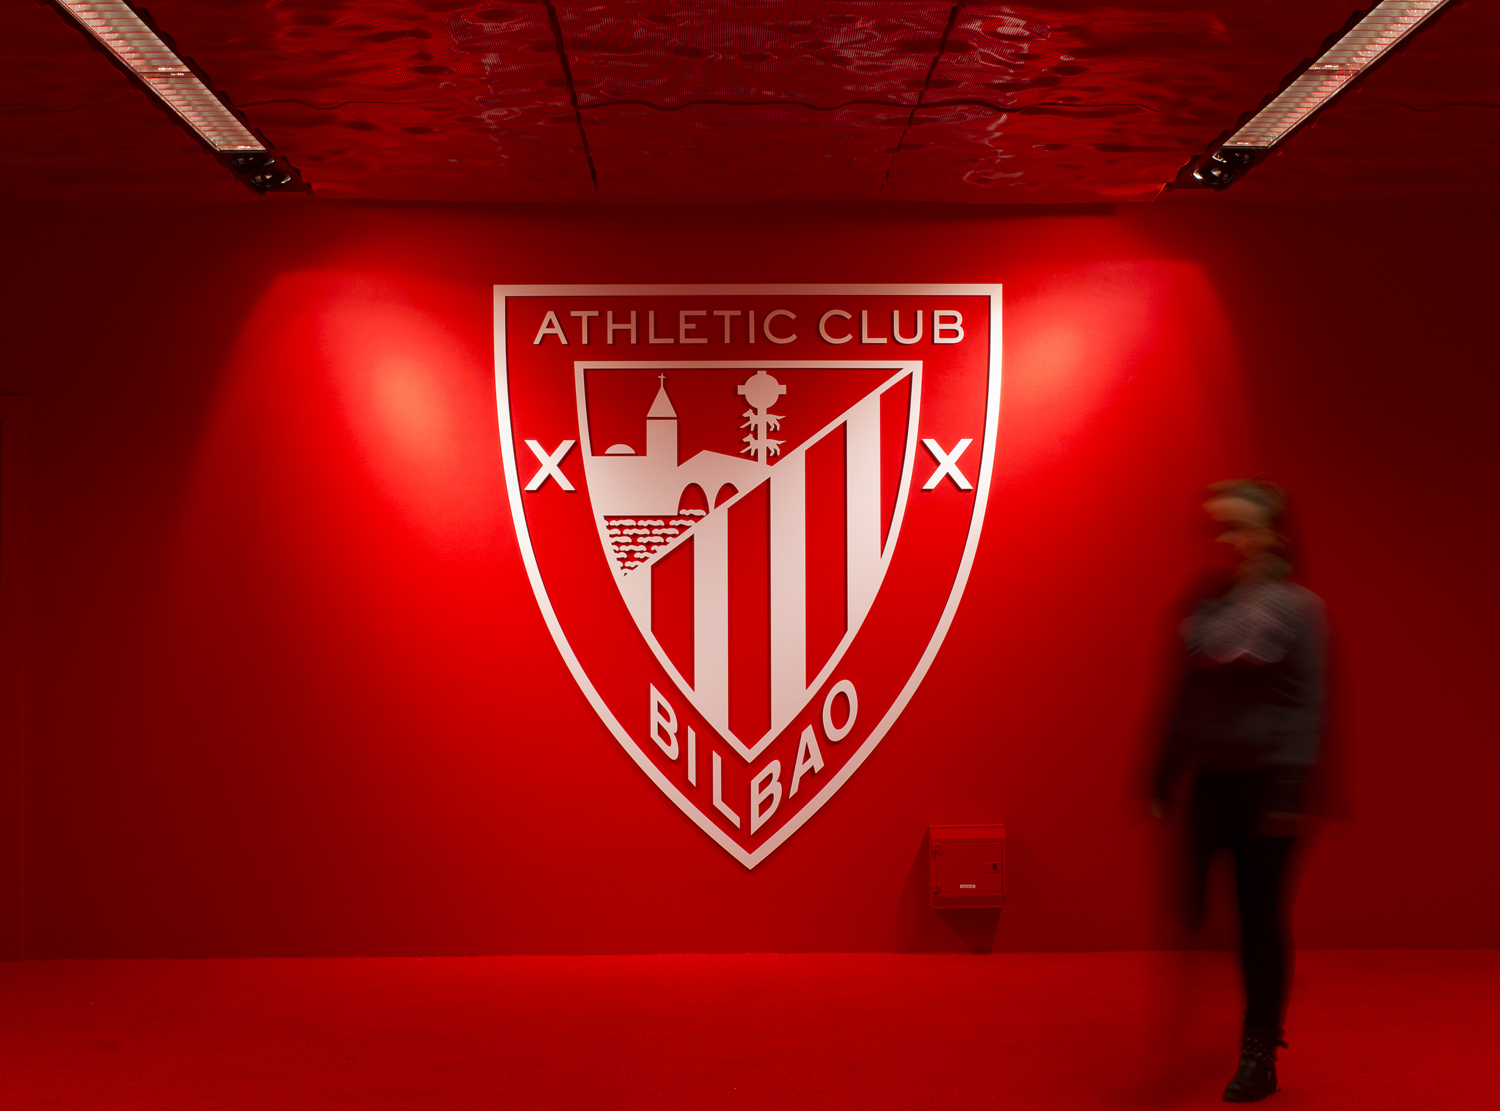 http://grafiksarea.com/wp-content/uploads/ATHLETIC-ESCUDO-1-de-1.jpg